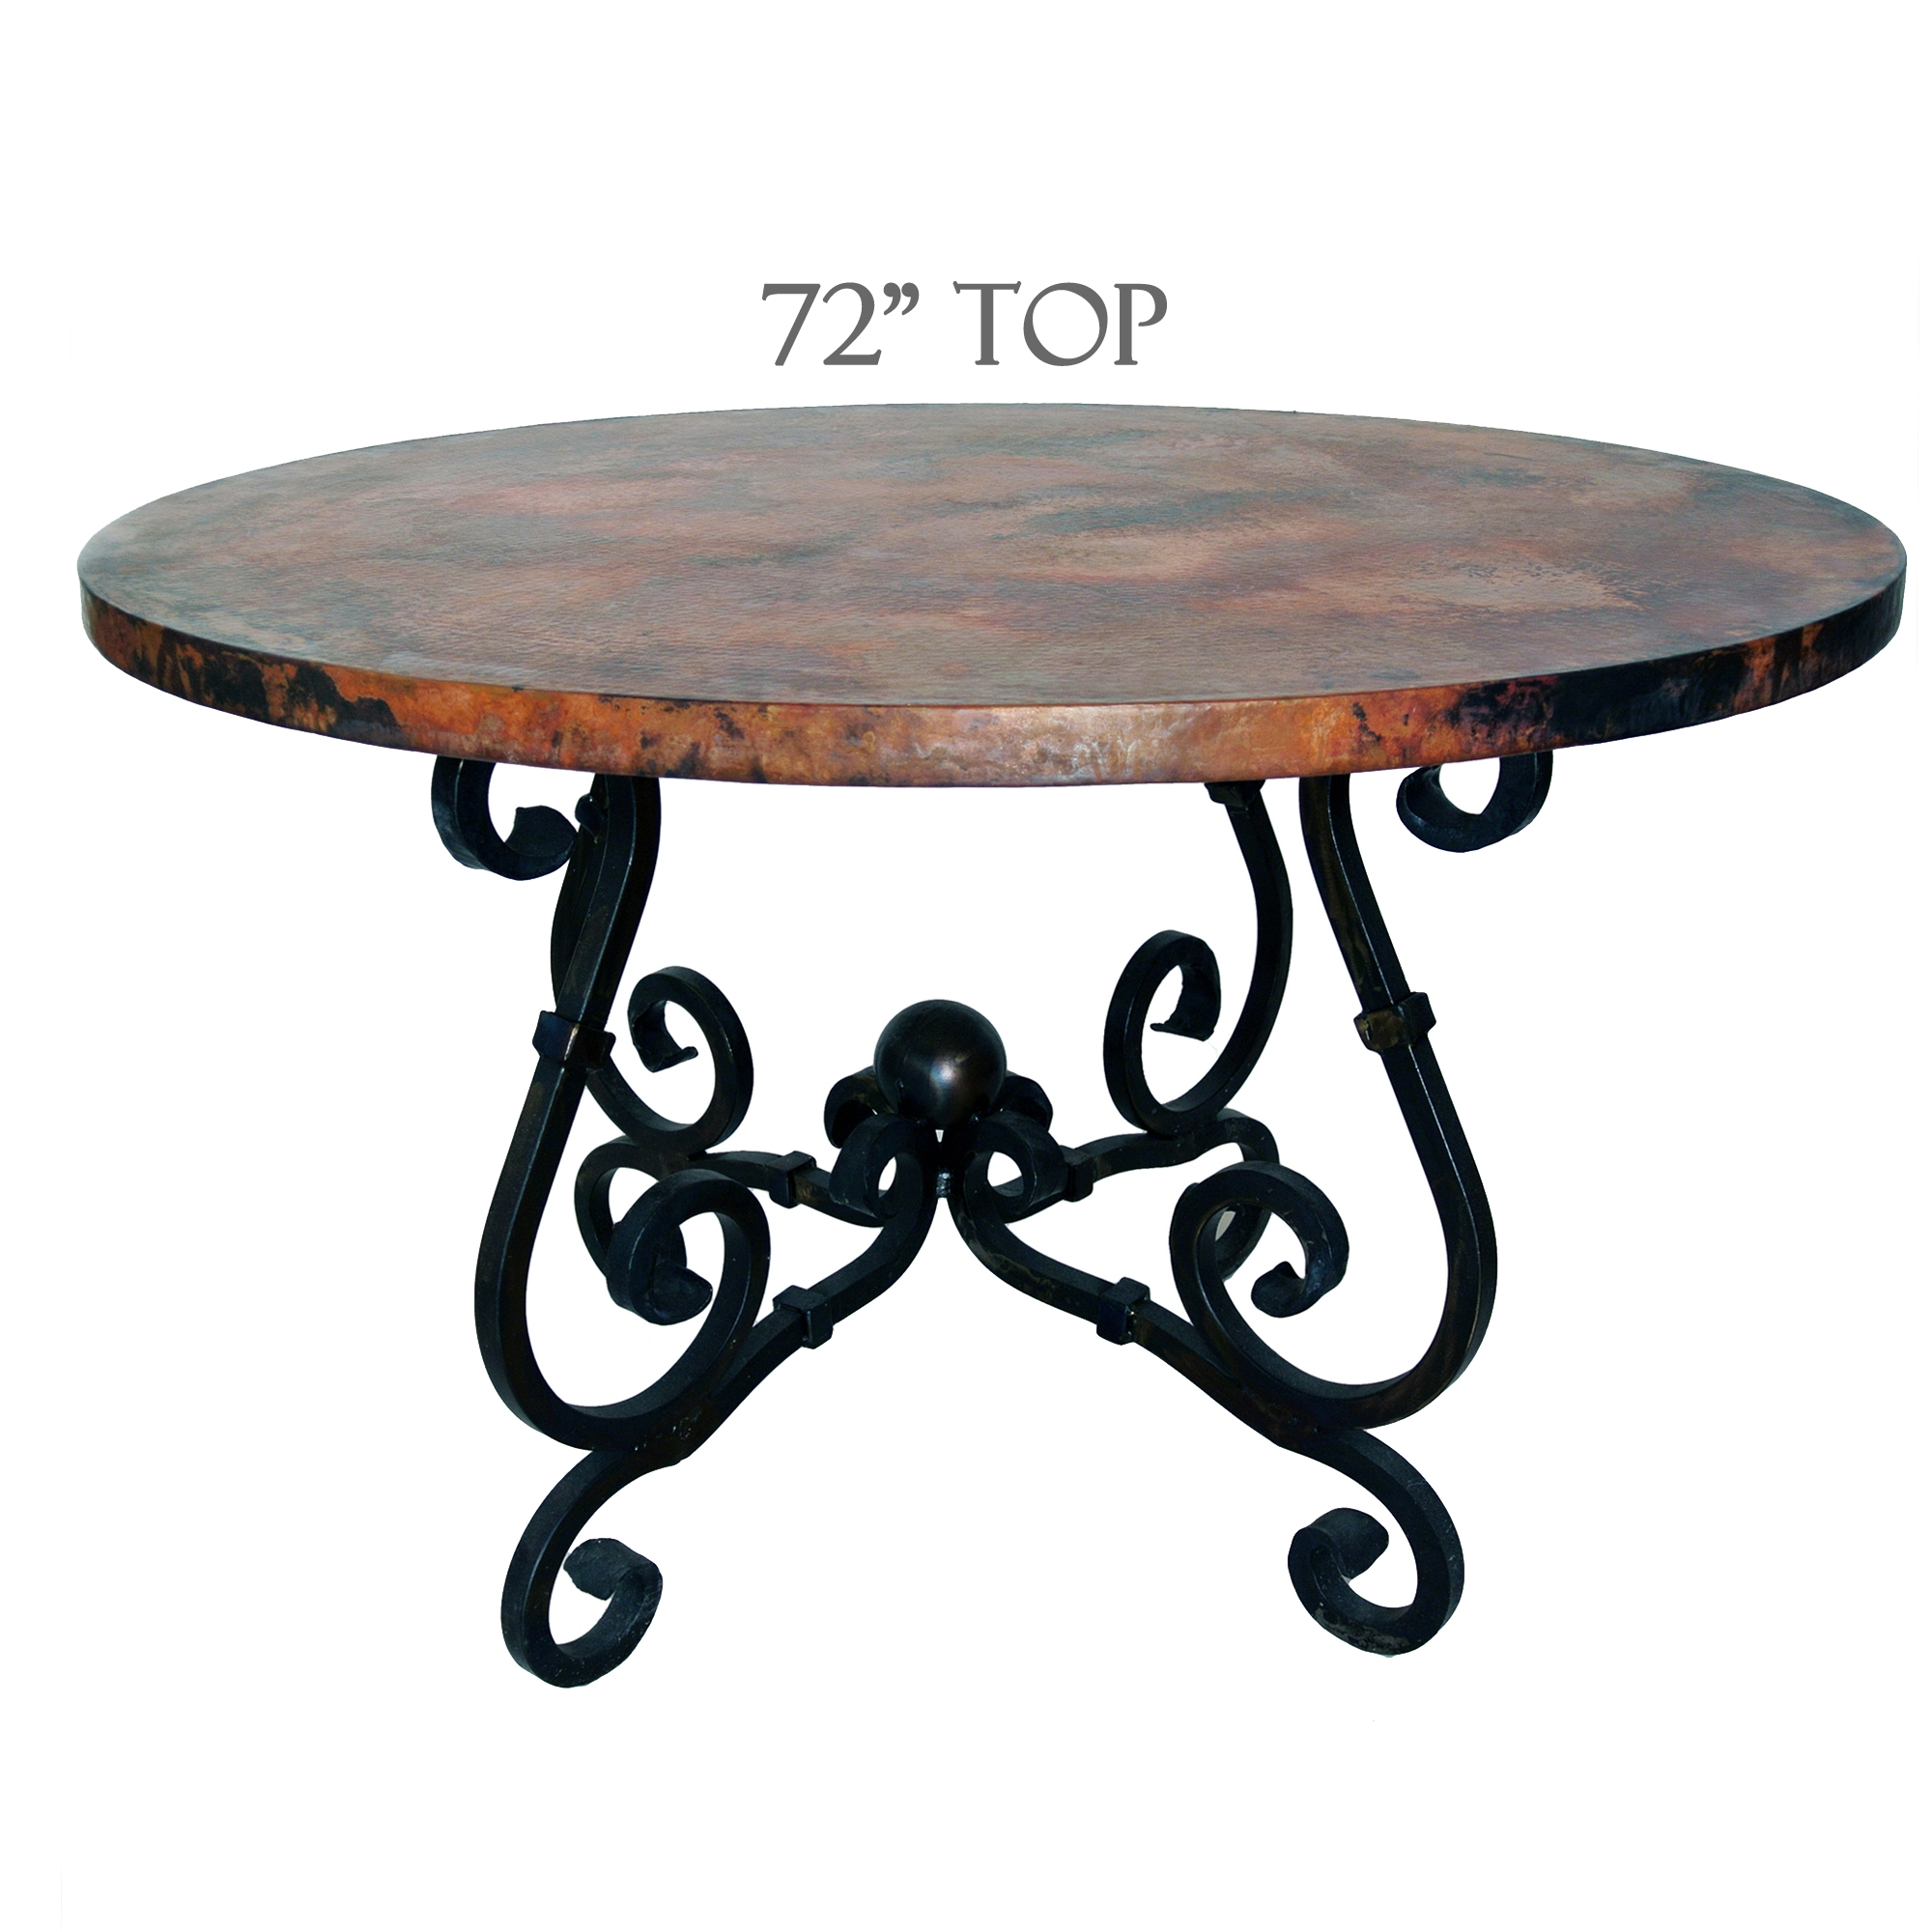 french dining table 72in diameter copper top timeless wrought iron. Black Bedroom Furniture Sets. Home Design Ideas